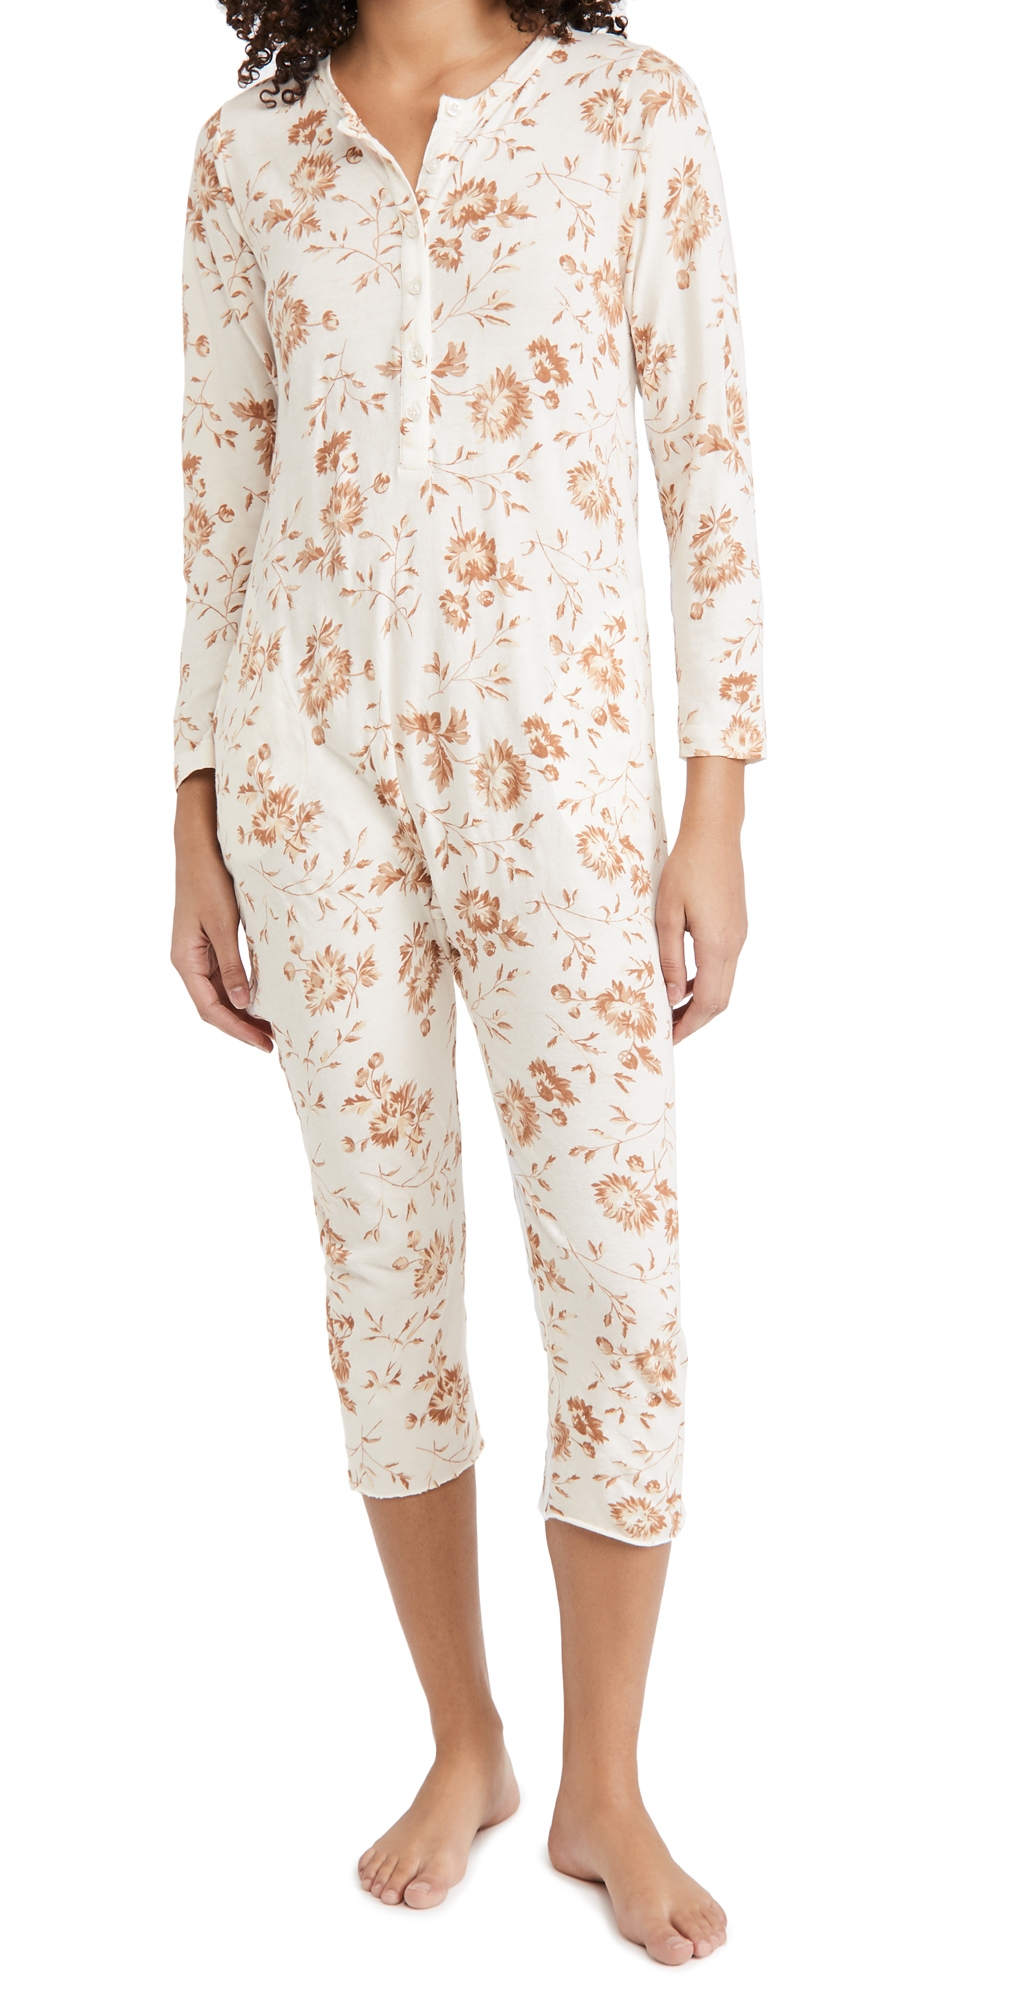 THE GREAT. The Long Sleeve Sleeper Jumpsuit